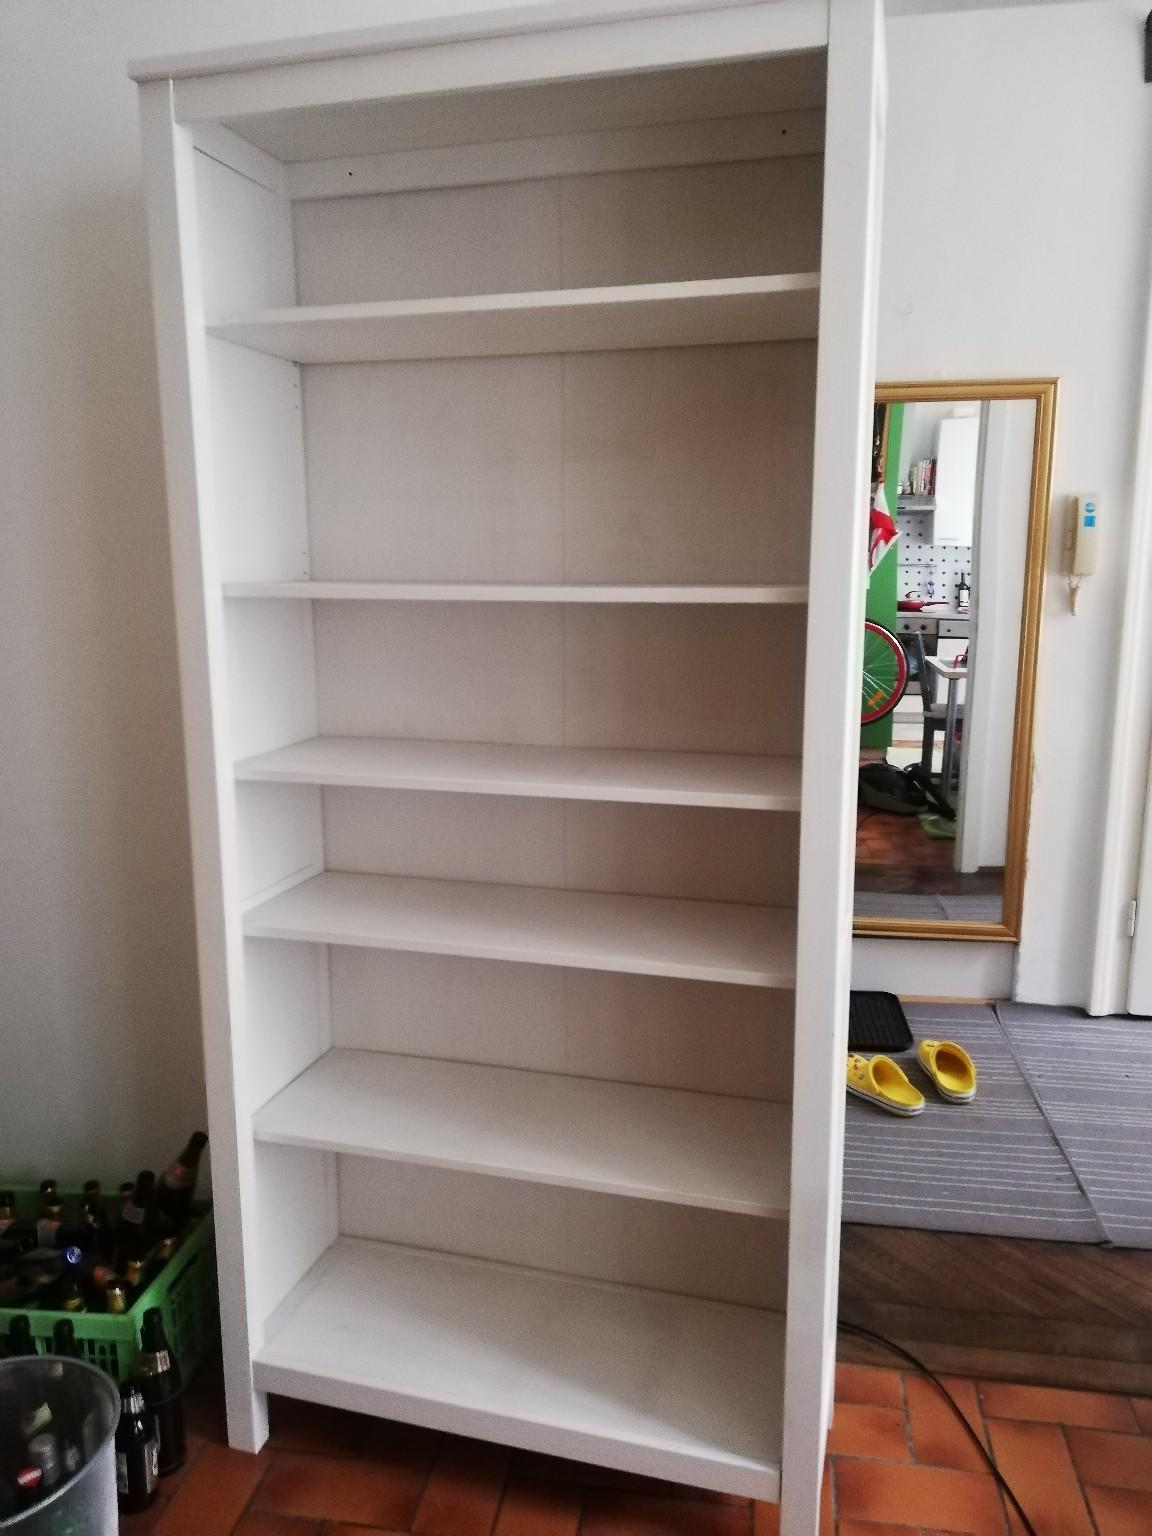 ikea regal stabilisieren